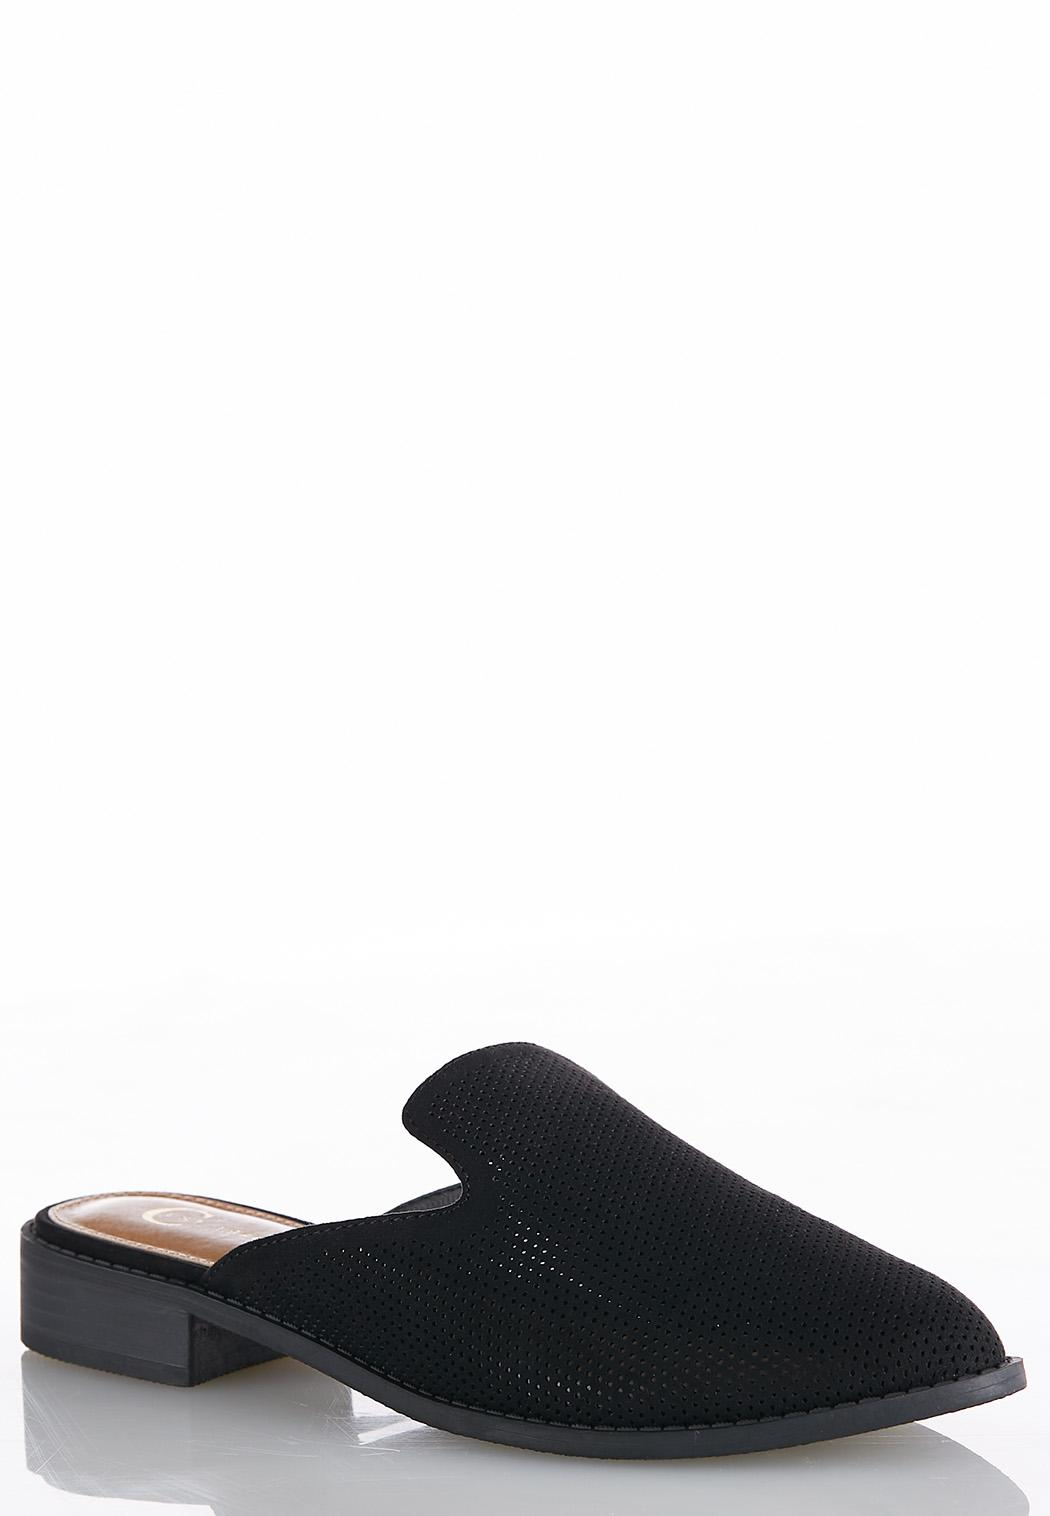 Faux Suede Perforated Slip-On Mules